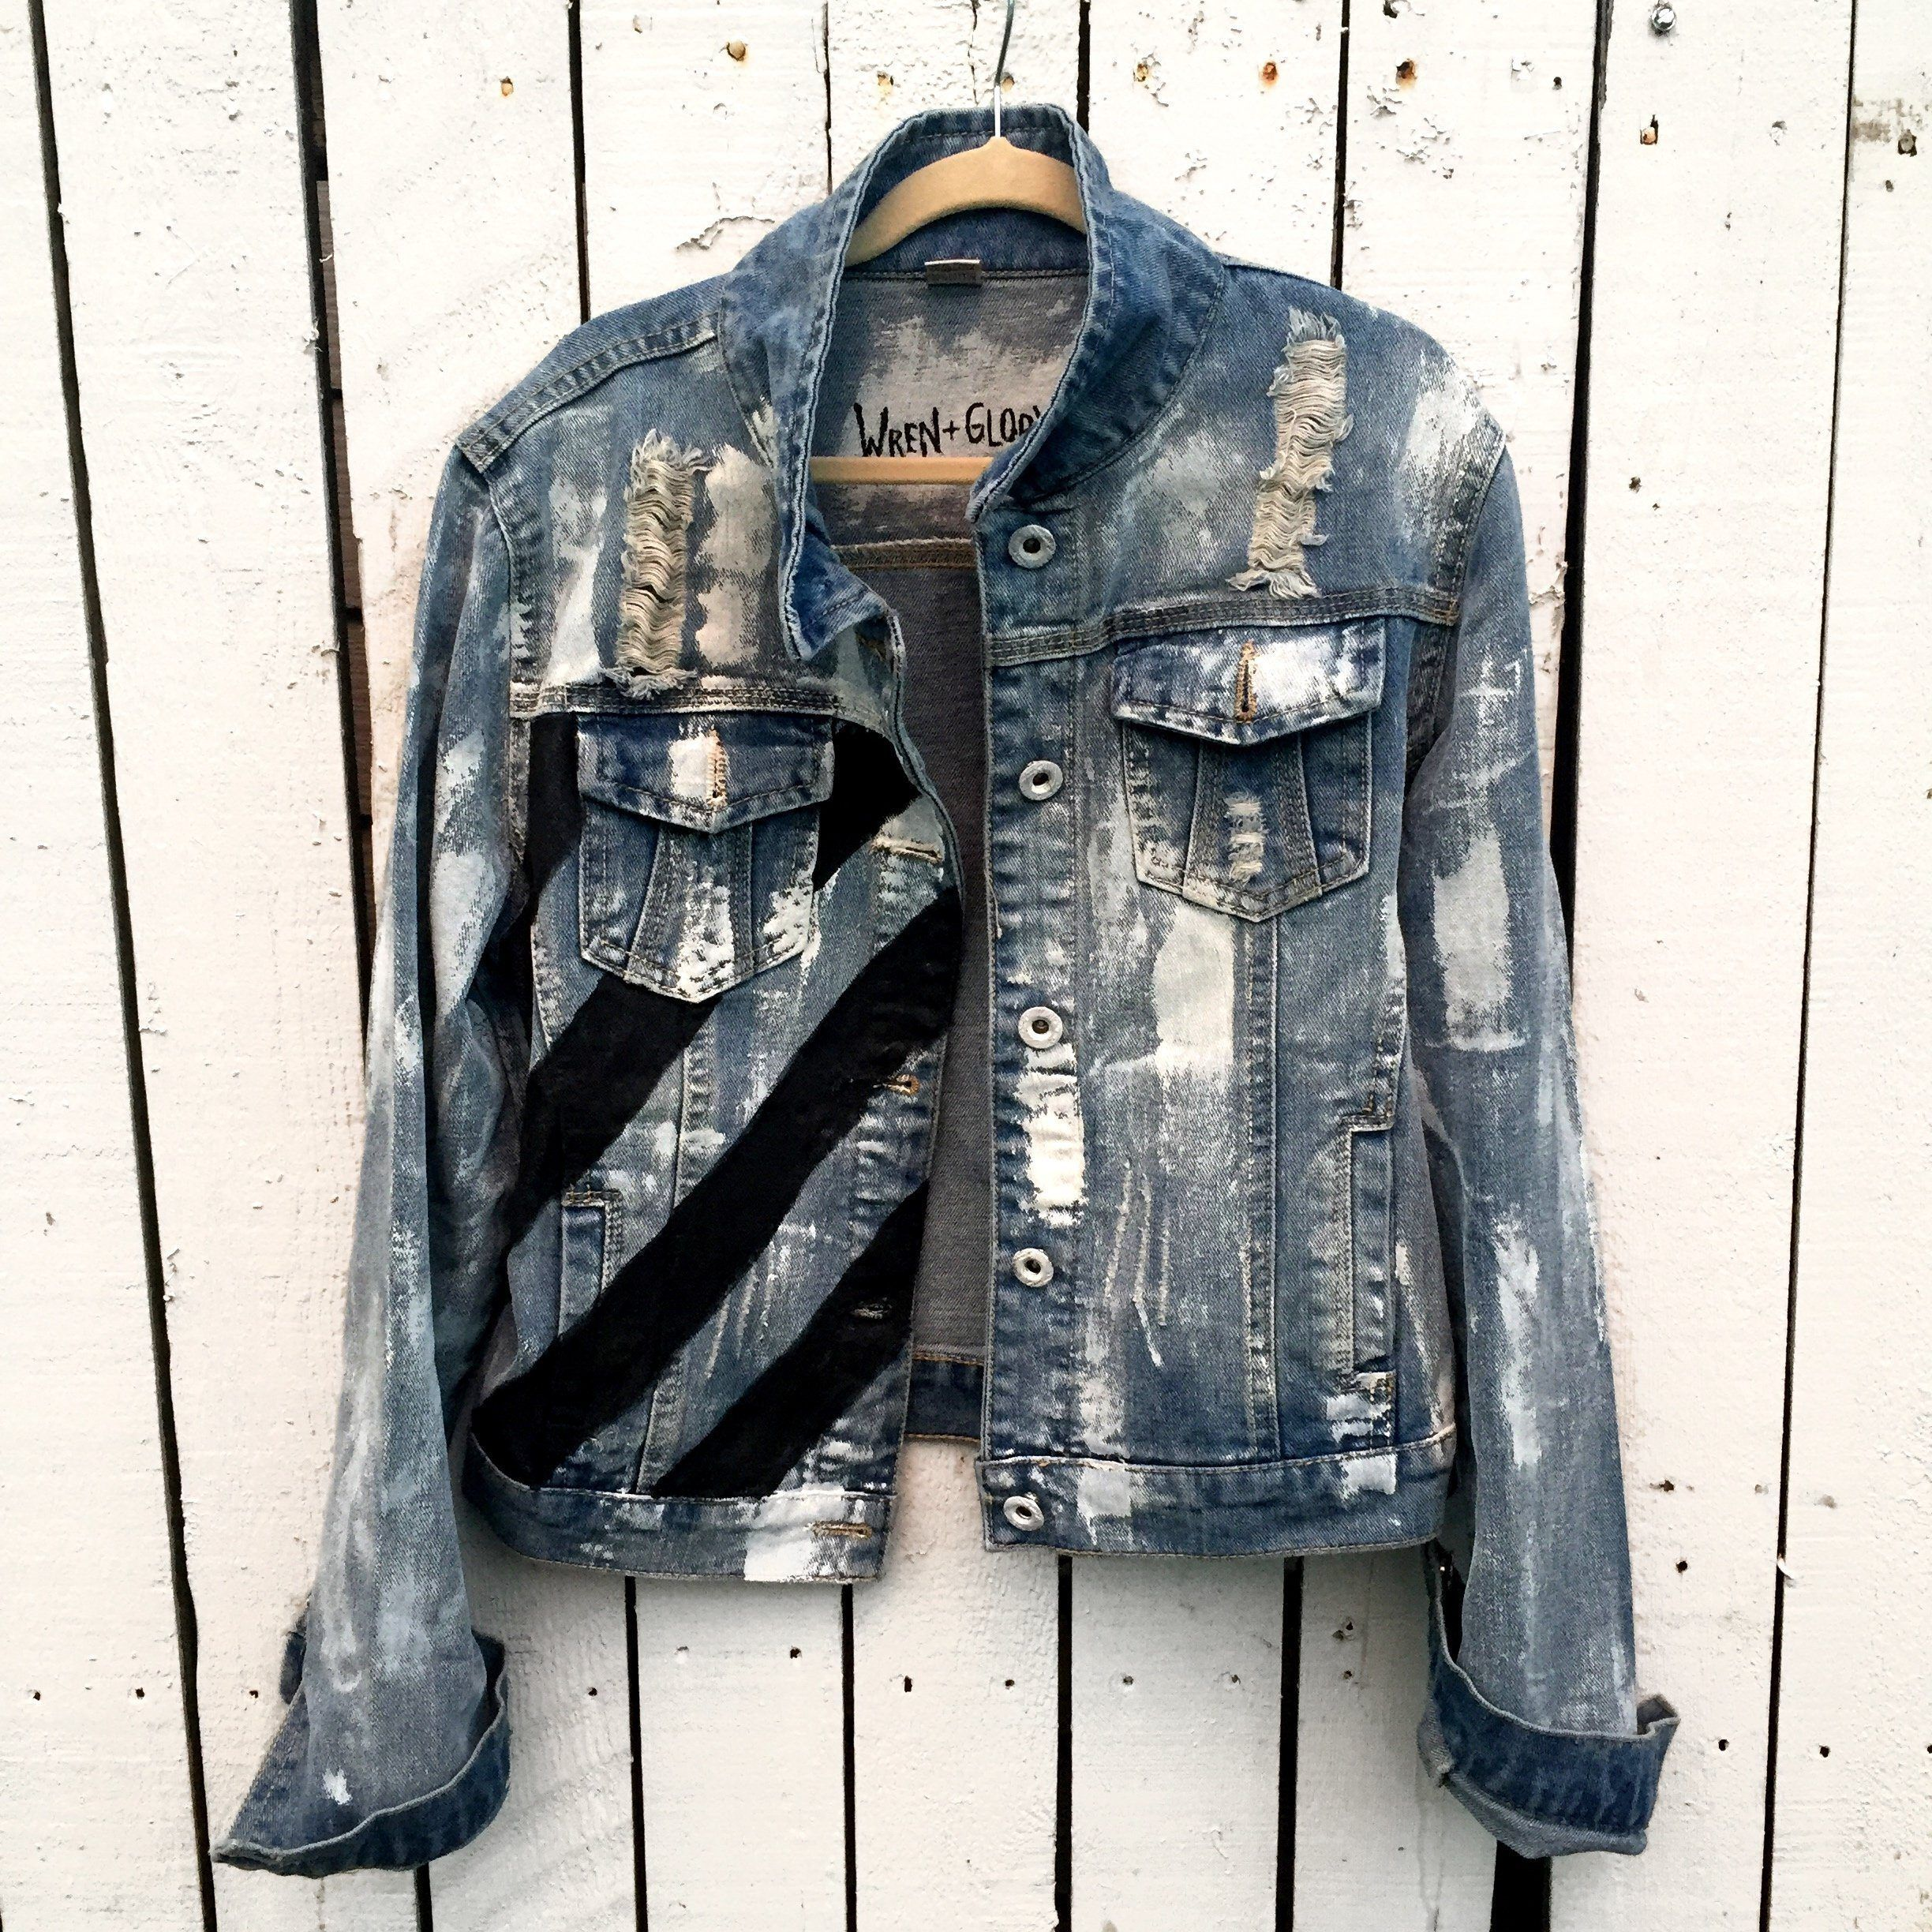 Power Light Wash Denim Jacket Hand Painted With White Black And Red Comfortable Fitted Slightly Cr Diy Denim Jacket Denim Jacket Jean Jacket Outfits [ 2448 x 2448 Pixel ]